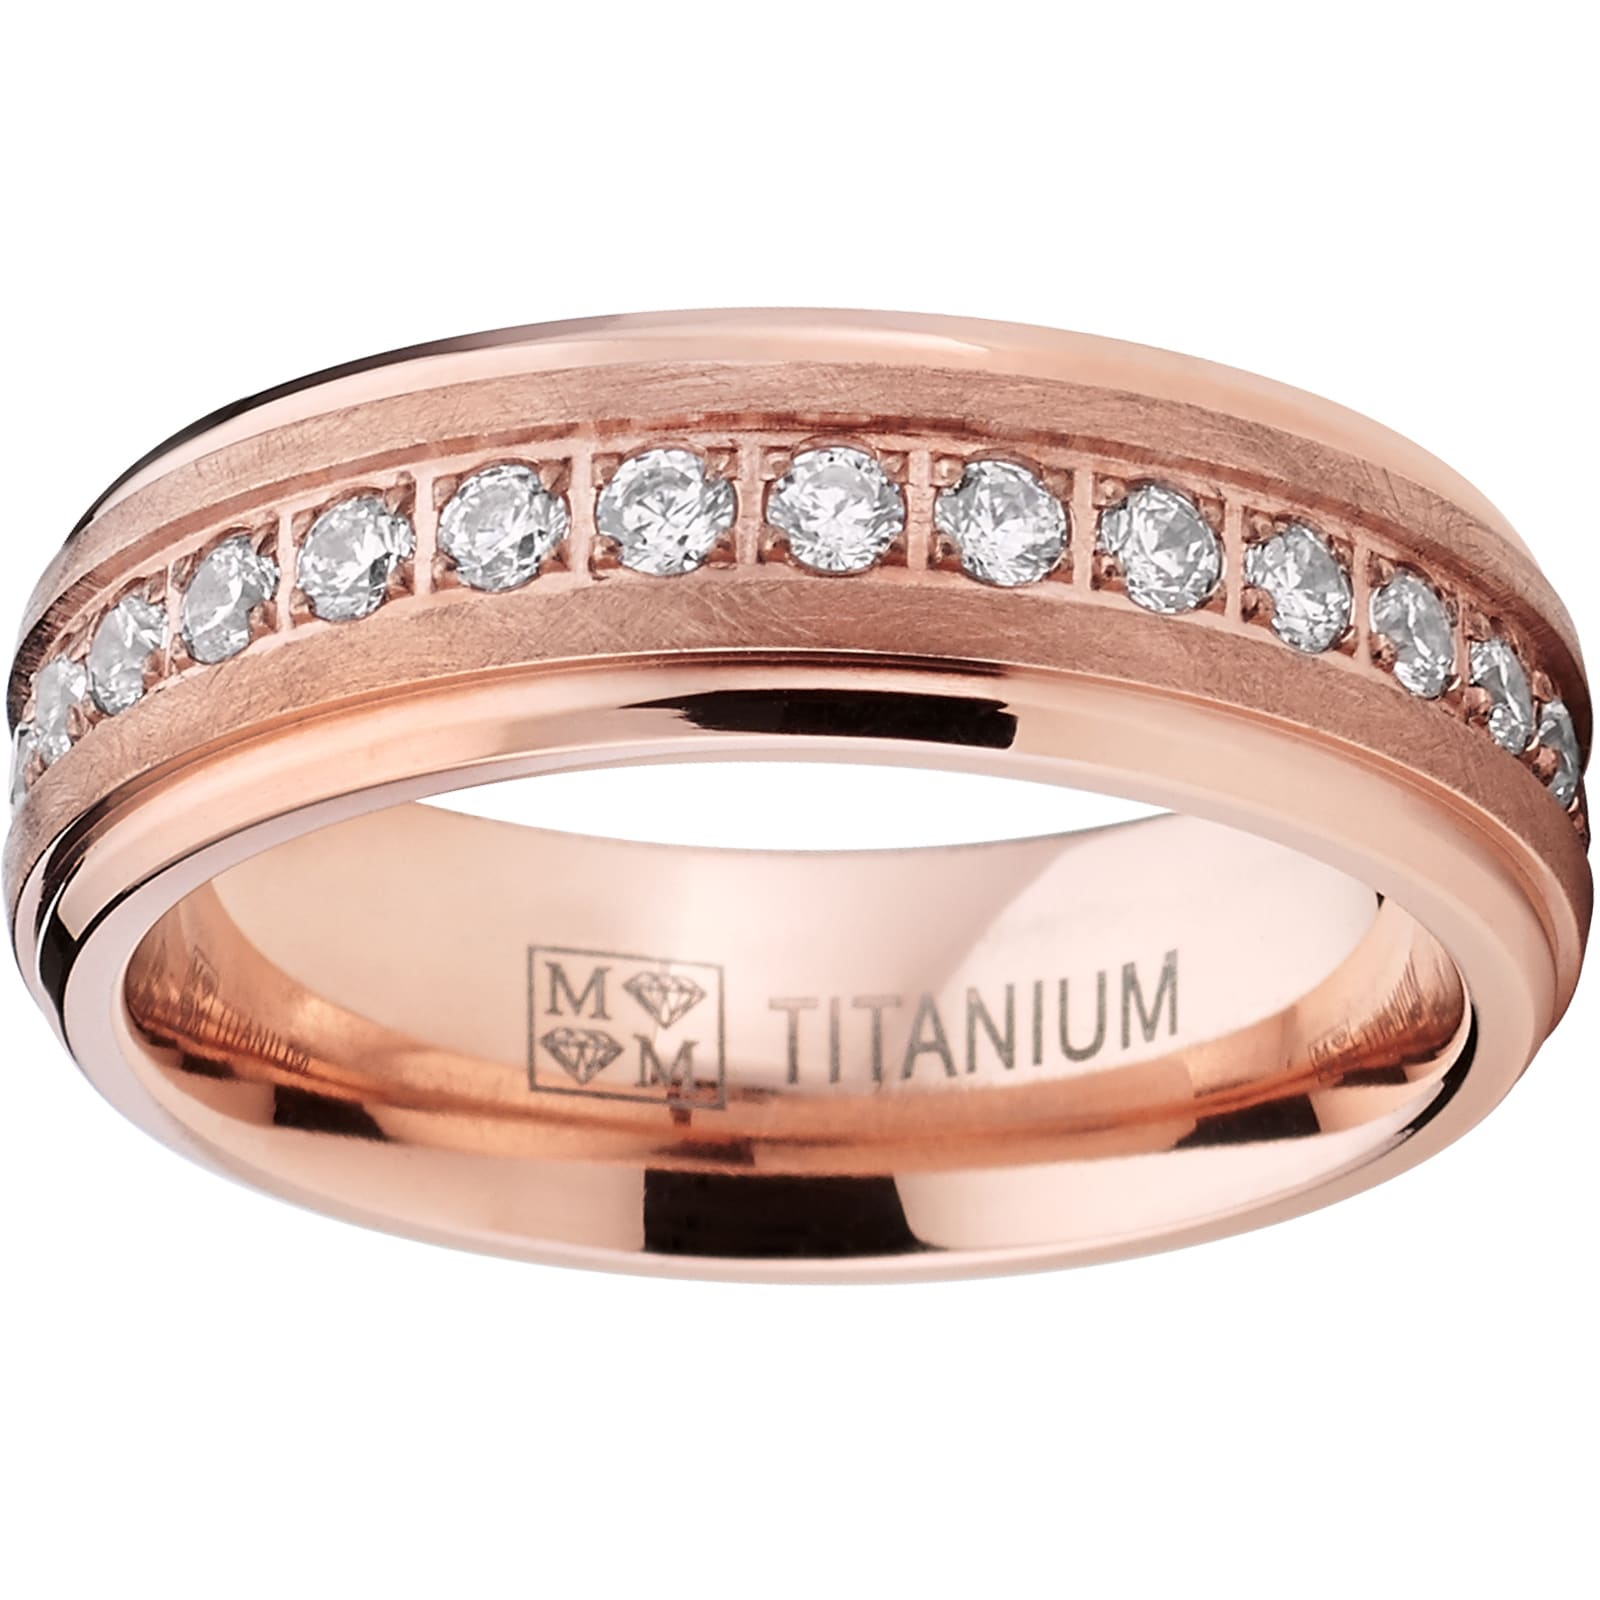 wedding bands finish hammer j r yates contemporary modern rings rose band mens gold jryates